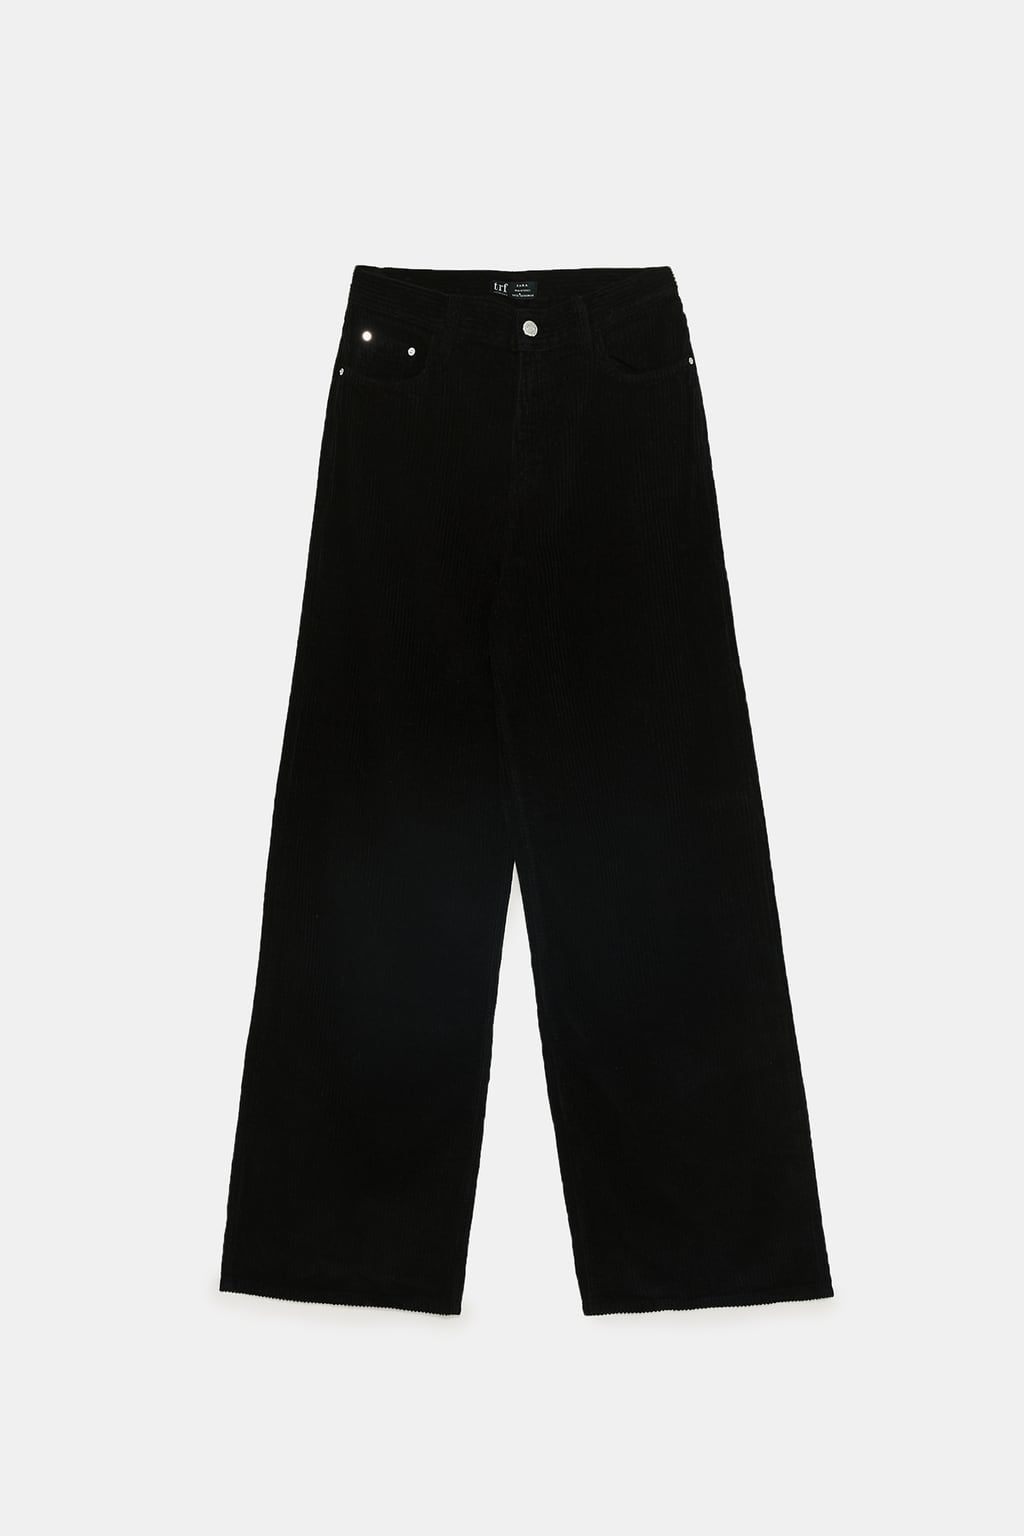 ab90bfedbf Image 8 of WIDE-LEG CORDUROY TROUSERS from Zara | Santa baby ...